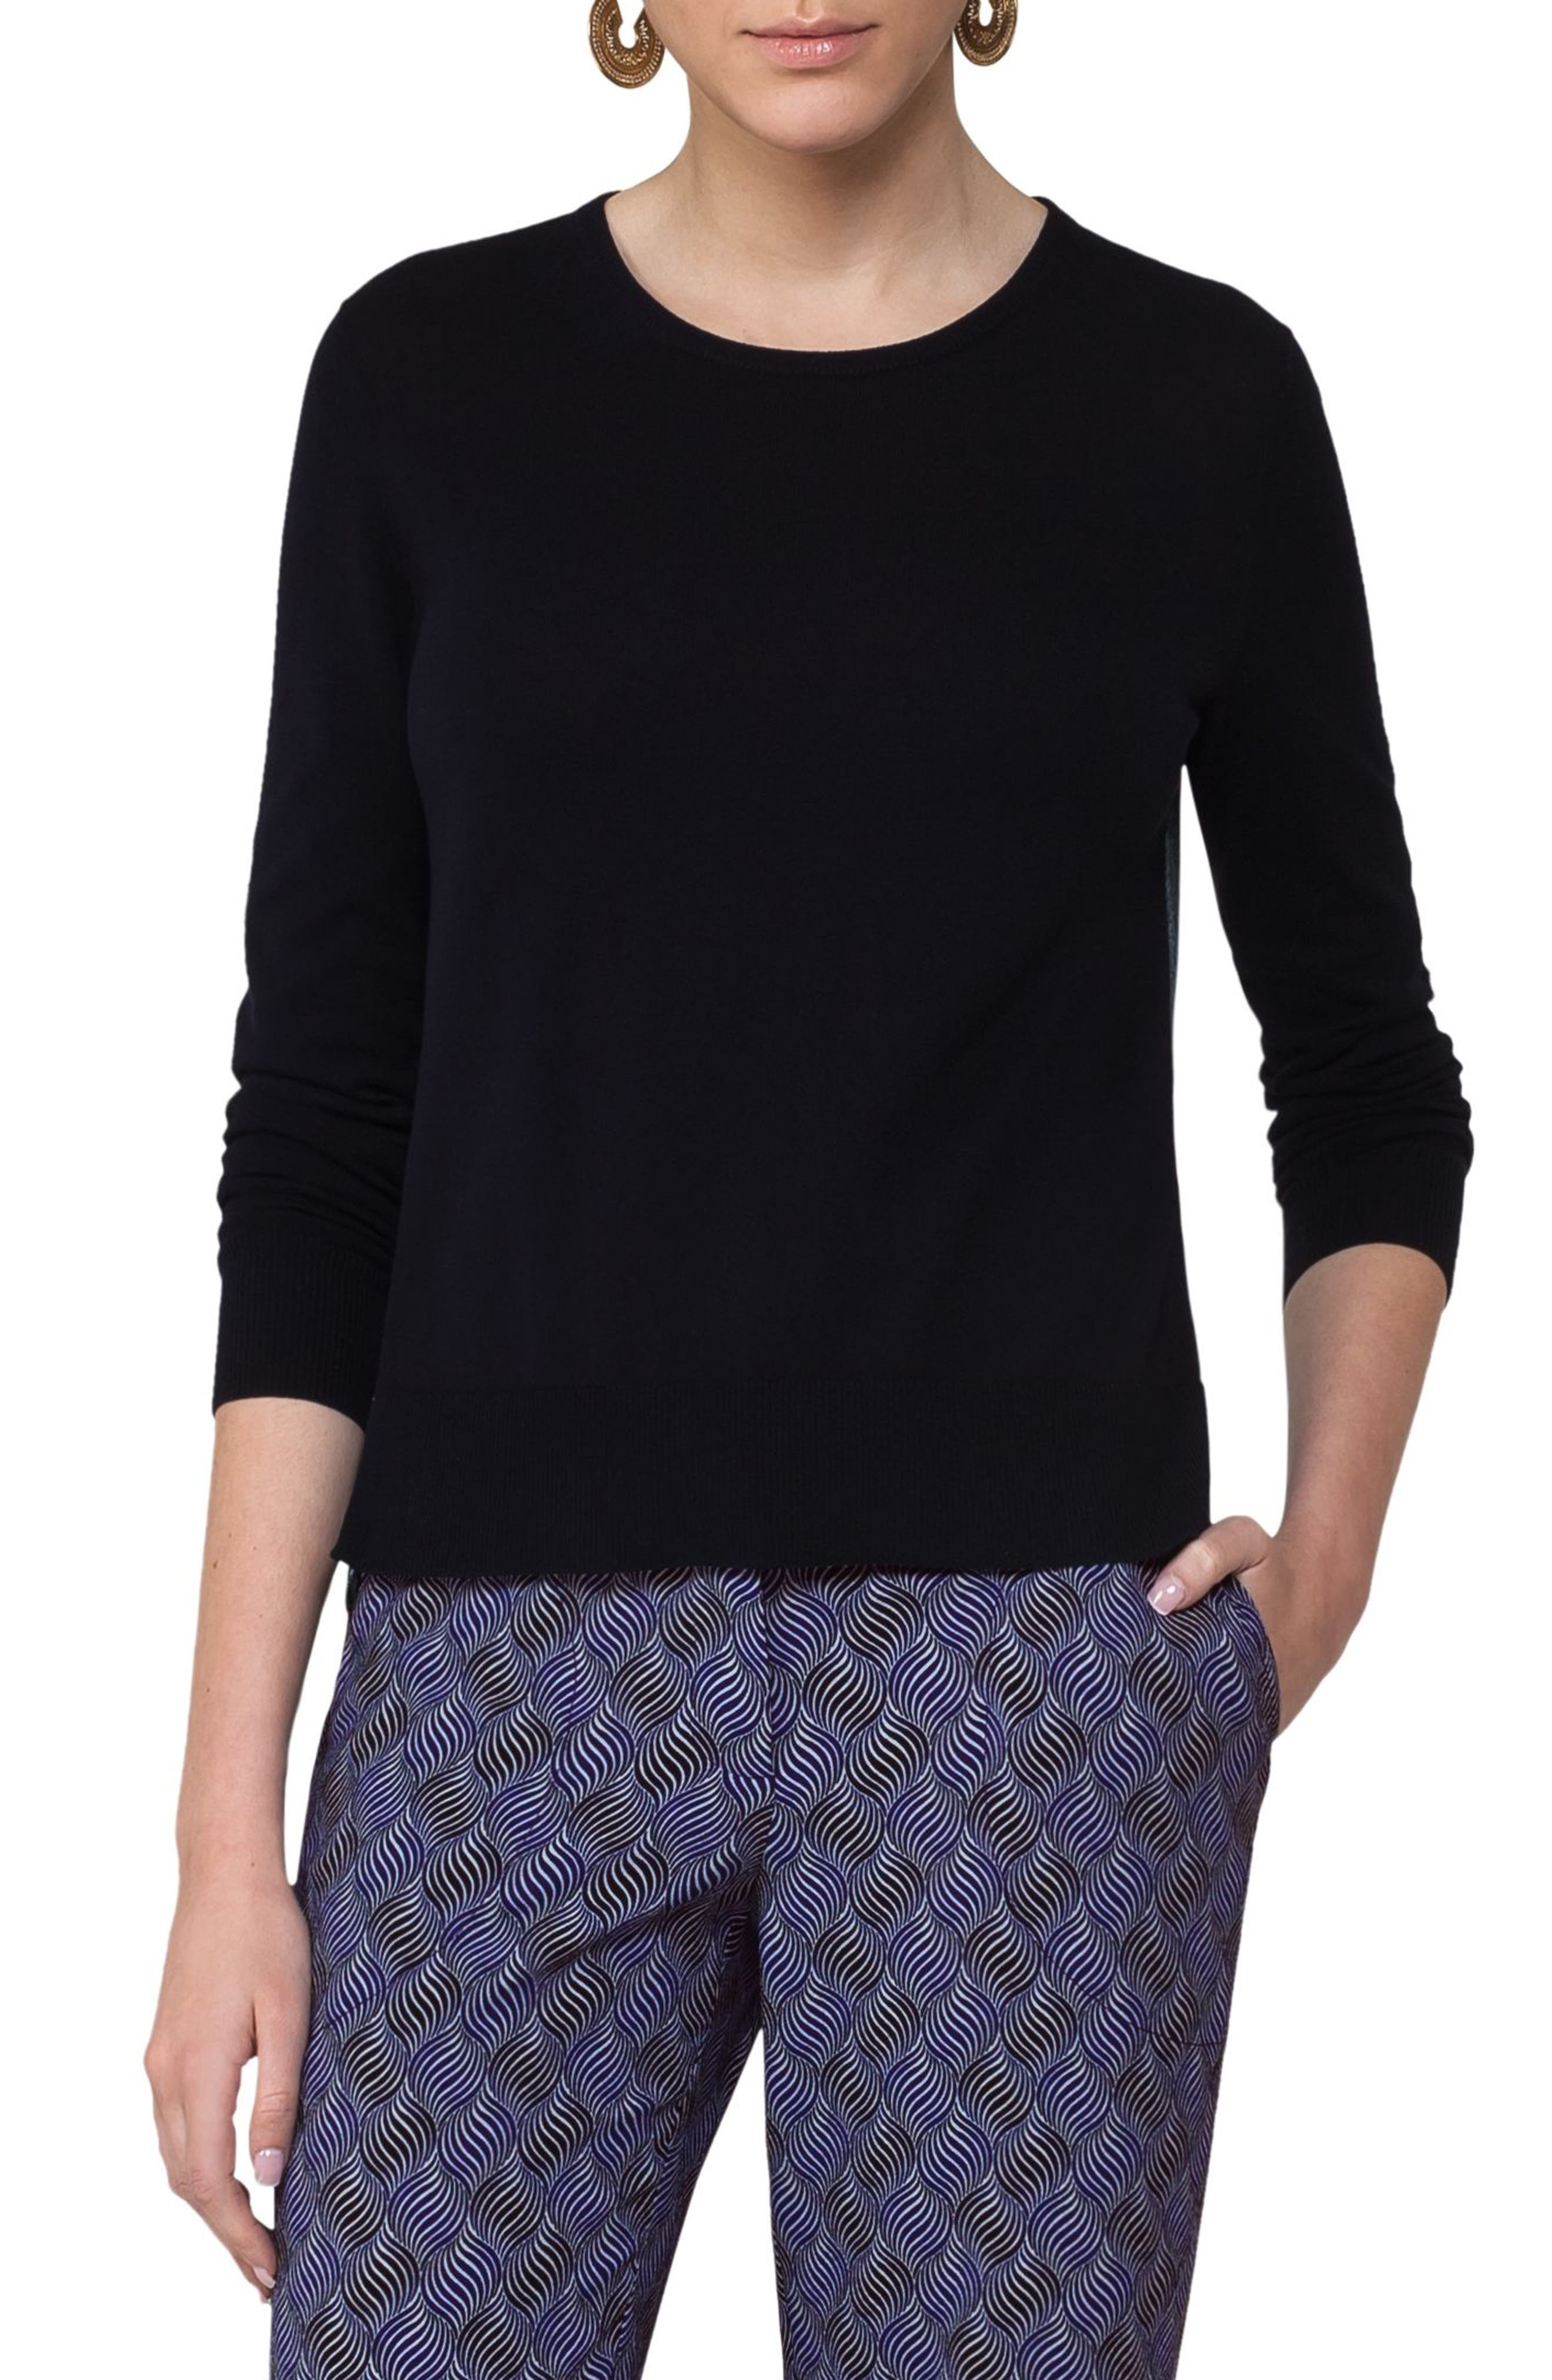 Las Rocas Print Back Pullover,                         Main,                         color, Solid Blue Denim